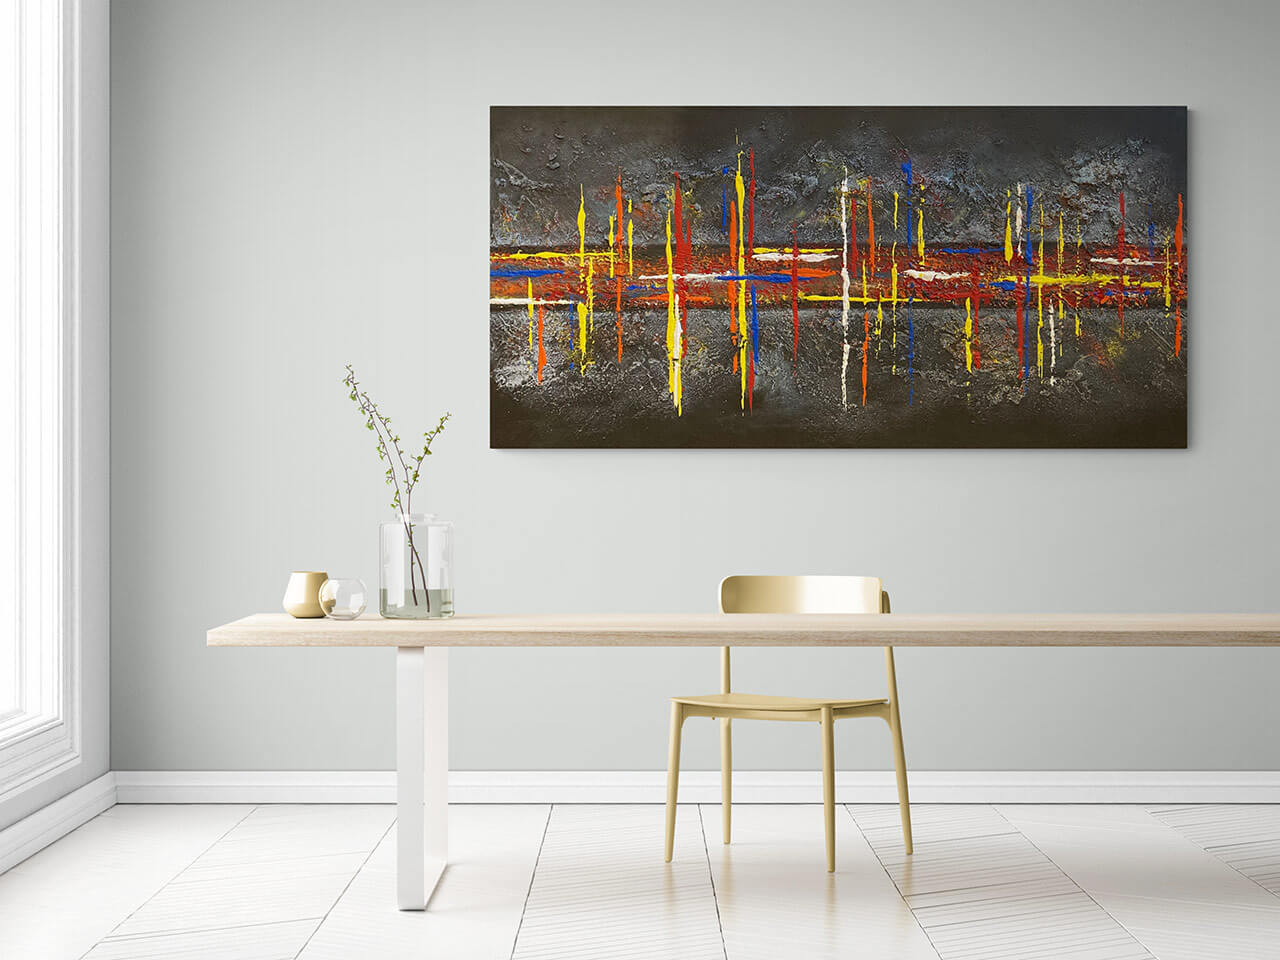 Buy original abstract artwork to decorate your dining room   AlessandraViola.co.uk